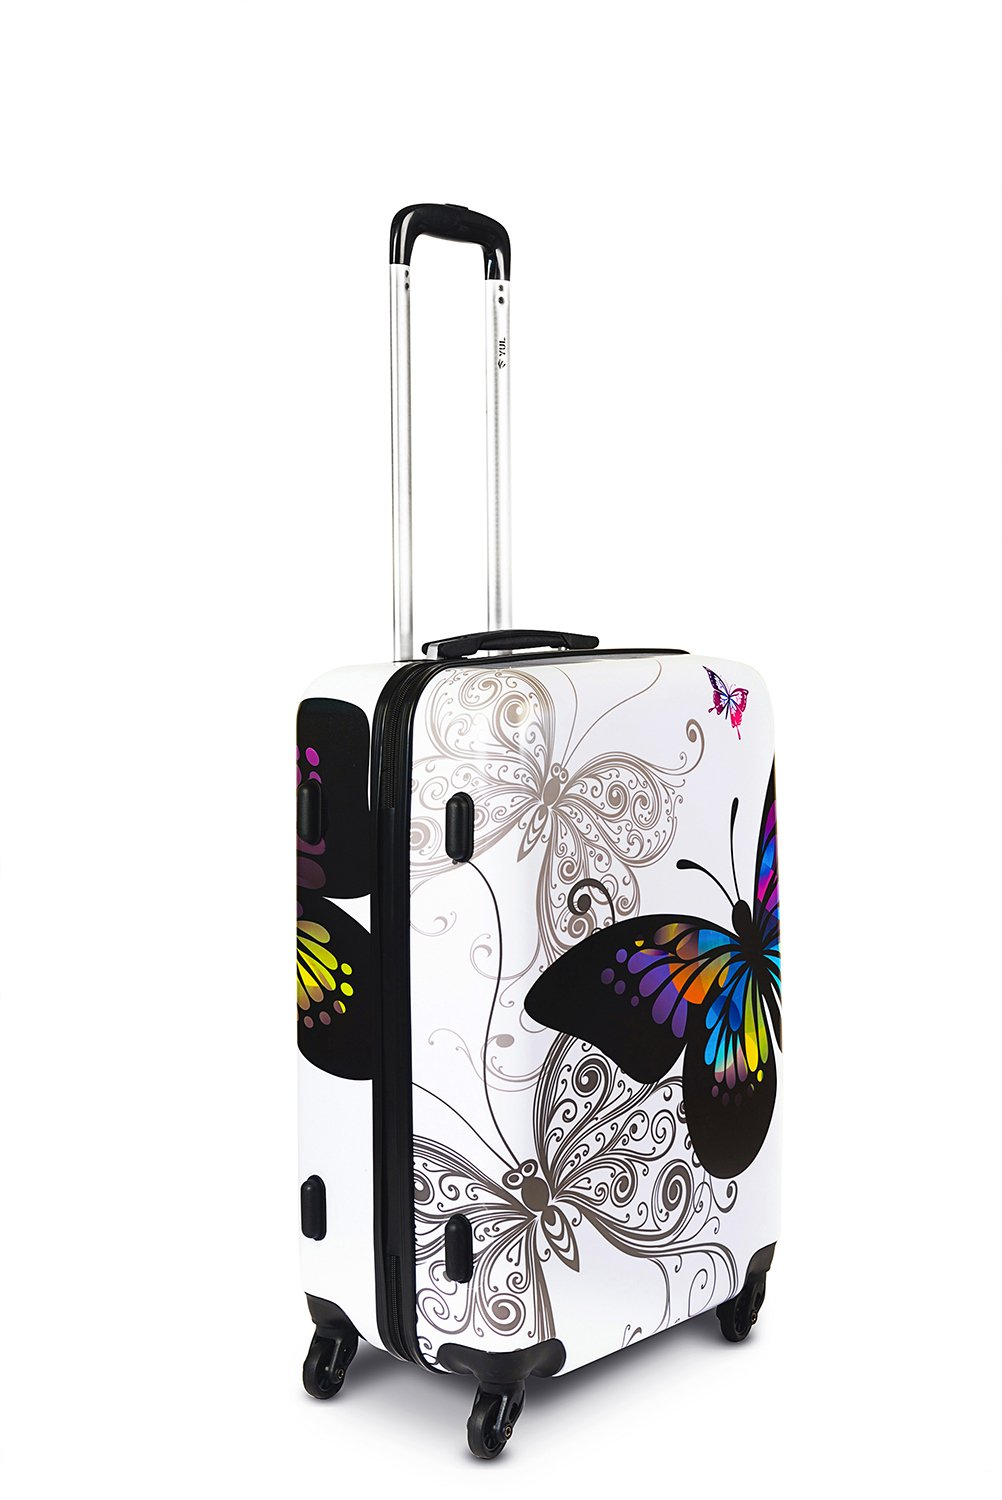 YUL Canada Brand Lightweight Hardside Spinner Luggage TSA Printing Collection (Butterfly, 20-inch Carry-on Size)